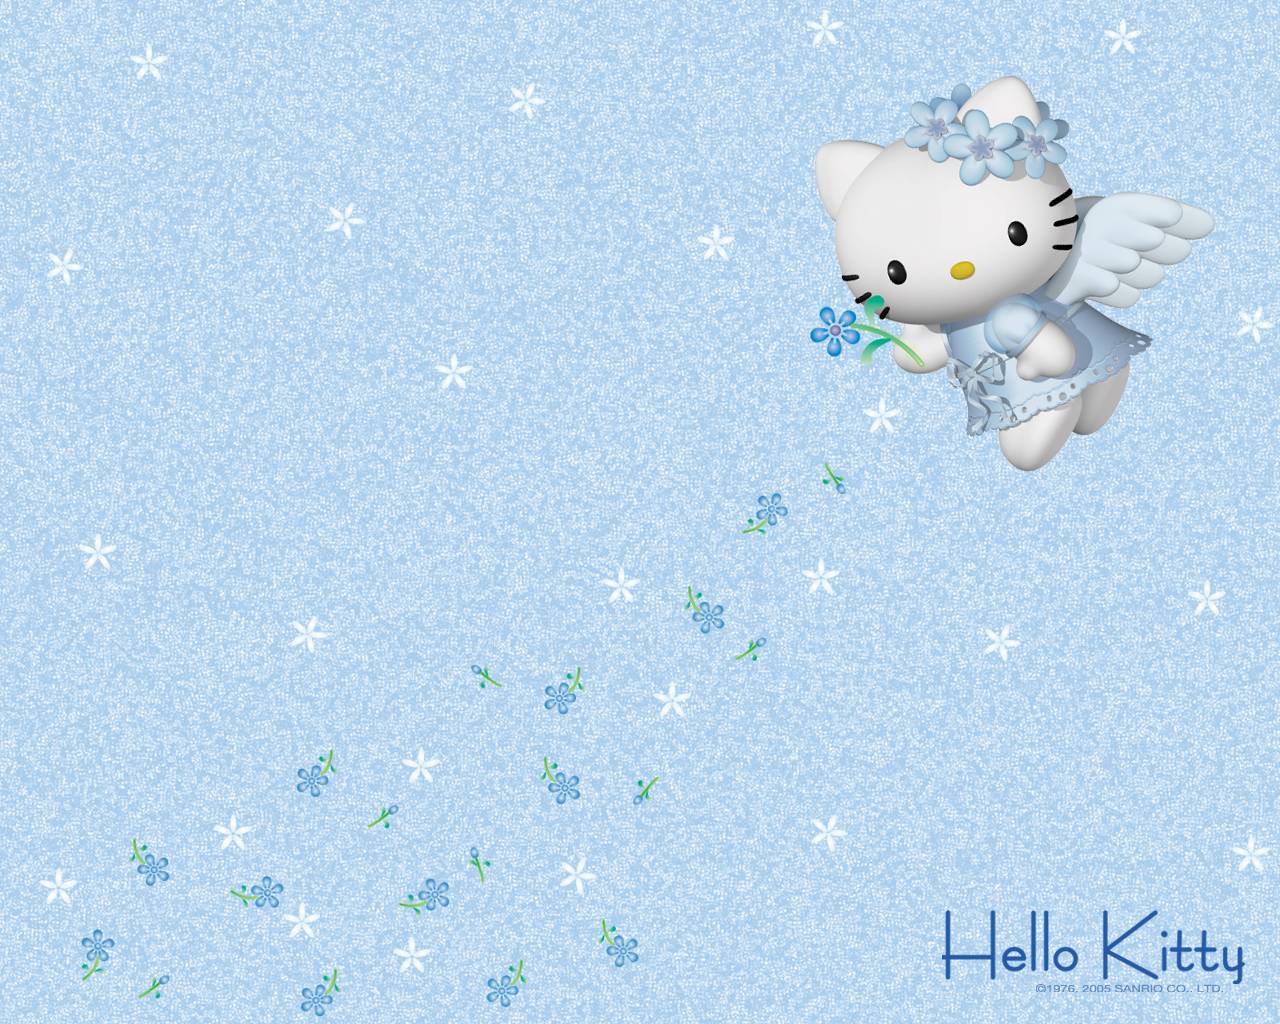 Hello Kitty Winter Wallpapers 1280x1024